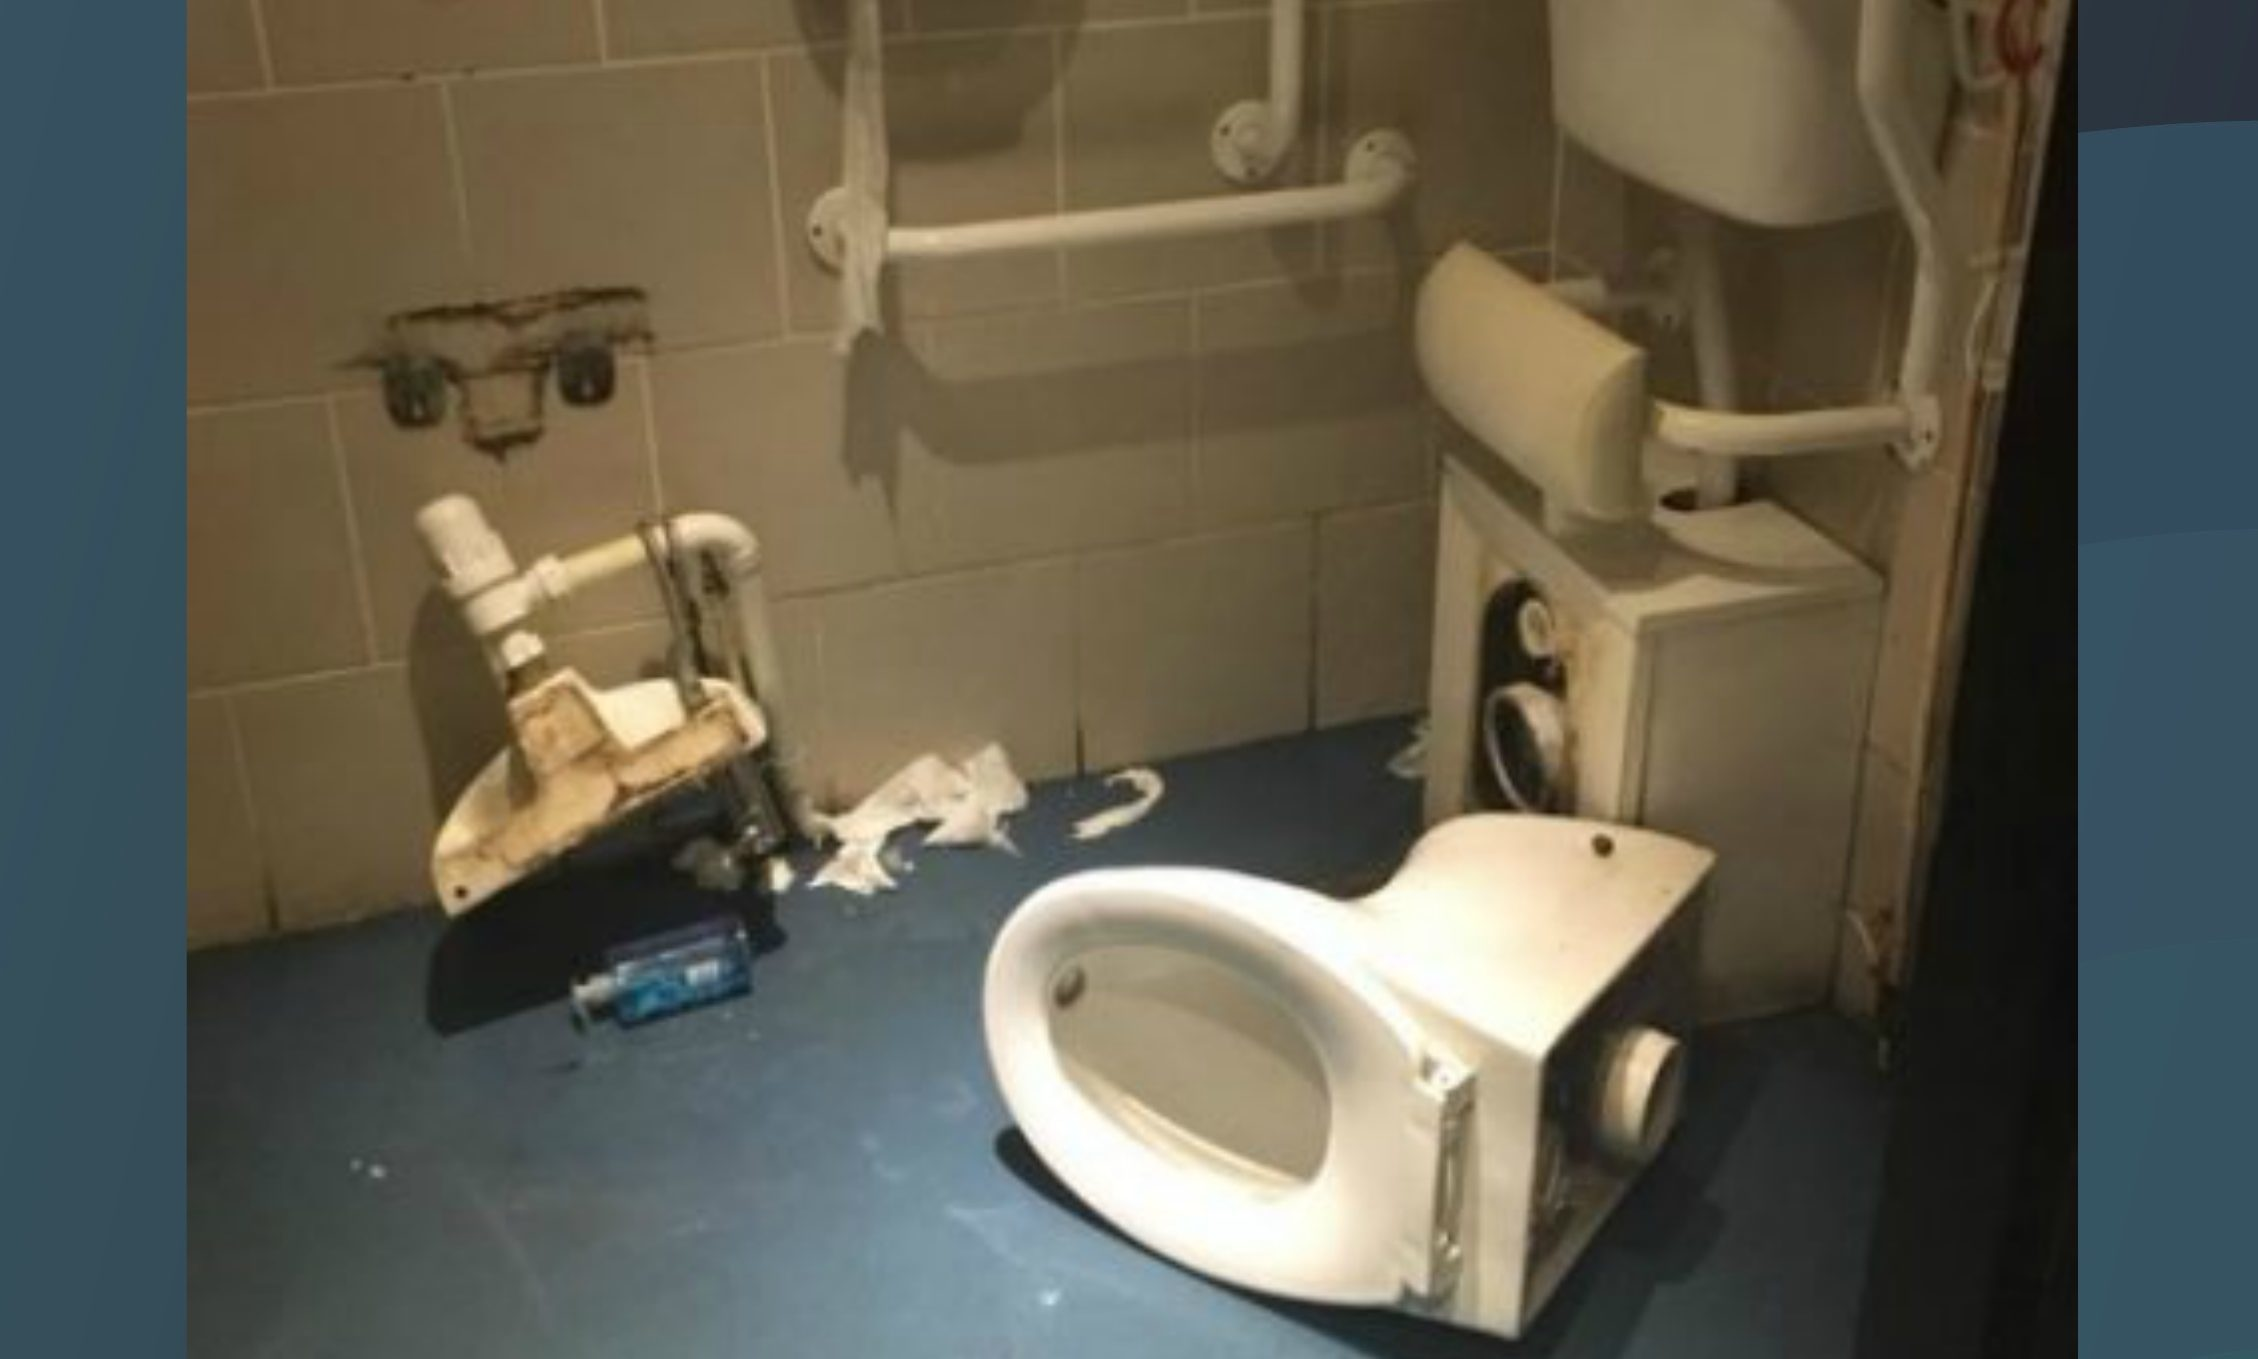 The collapsed toilet.